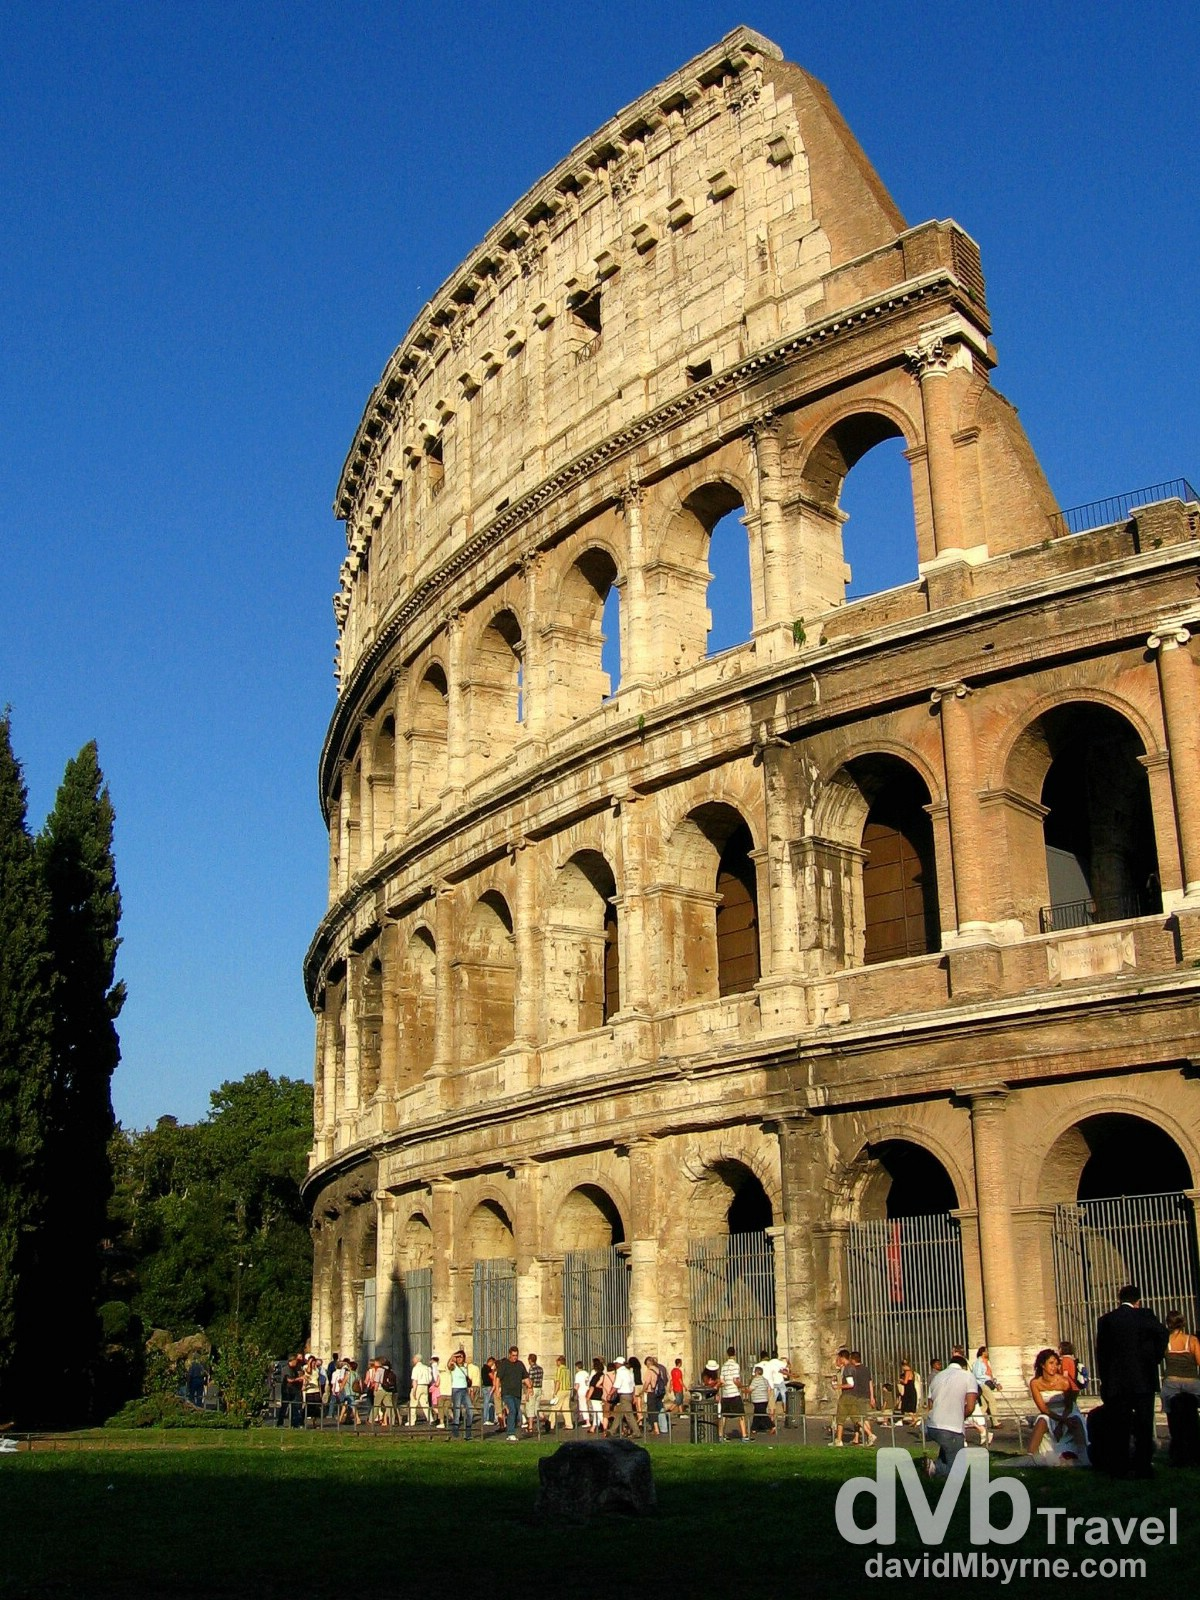 Walking by a section of the external facade of the Colosseum in Rome, Italy. September 1st, 2007.